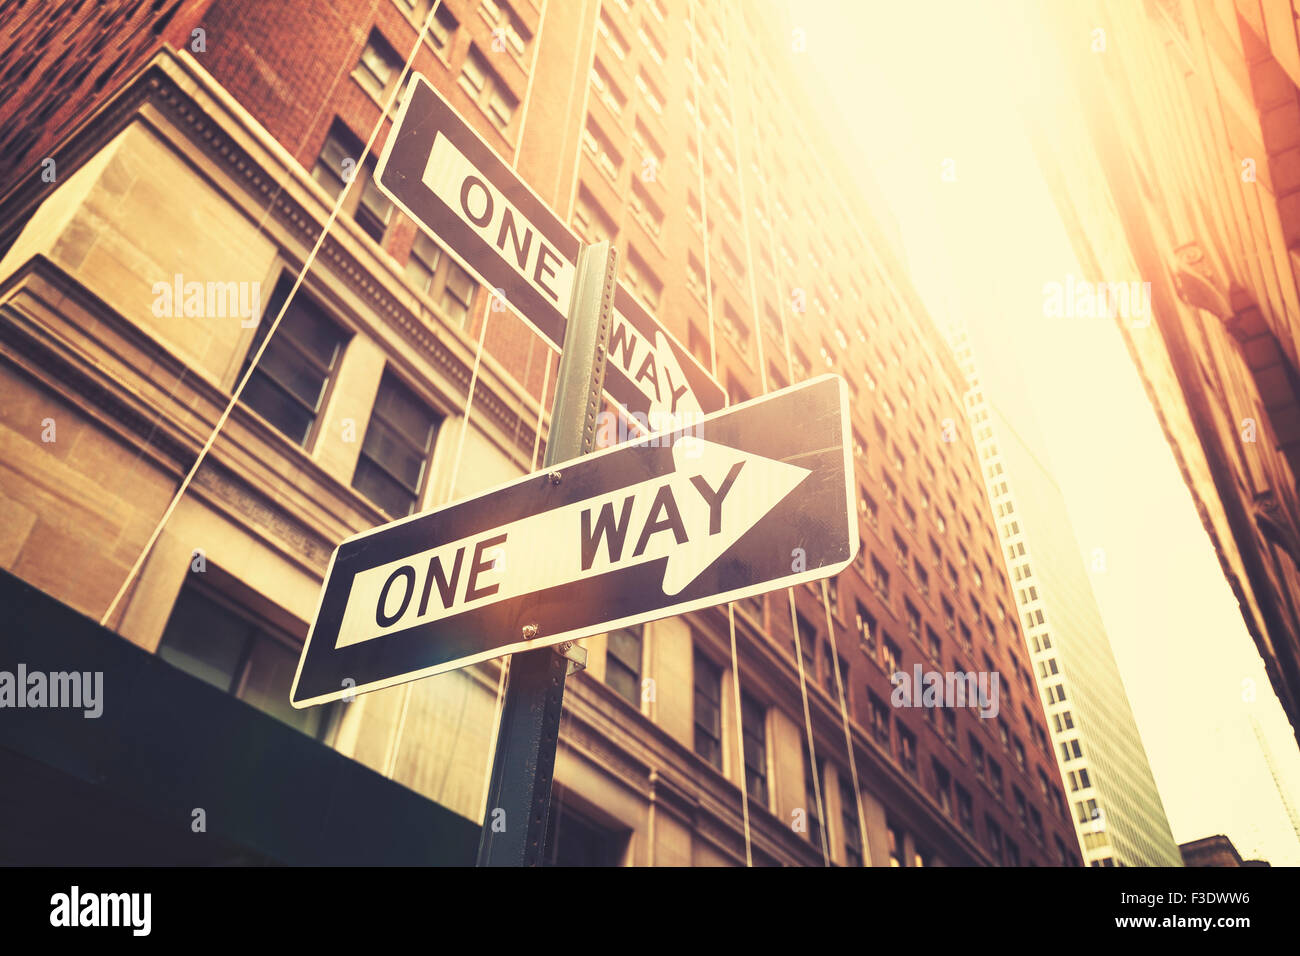 Retro style 'one way' signs on street of Manhattan, shallow depth of field, New York, USA. - Stock Image